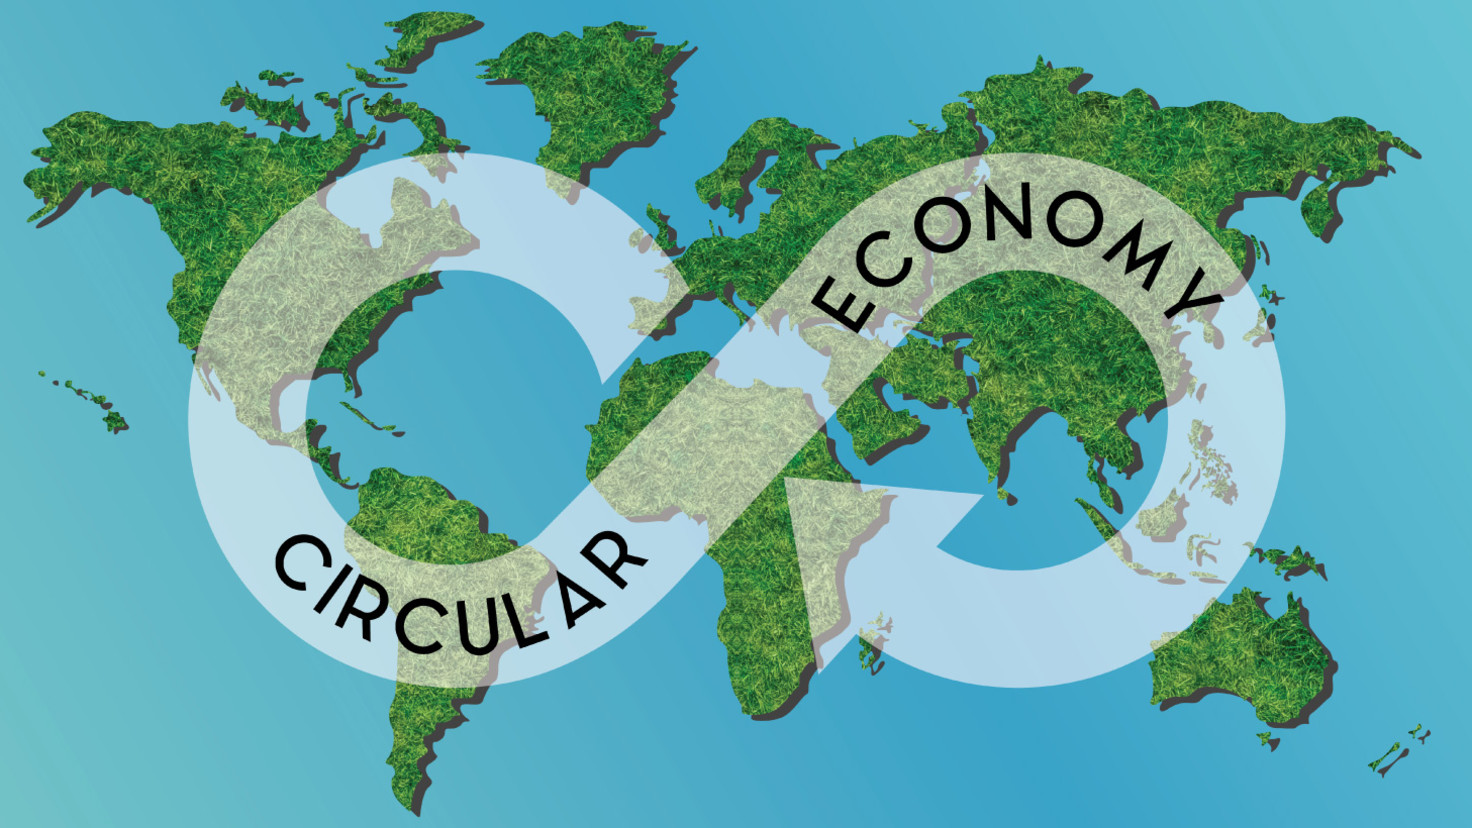 What are the investment opportunities in the circular economy?